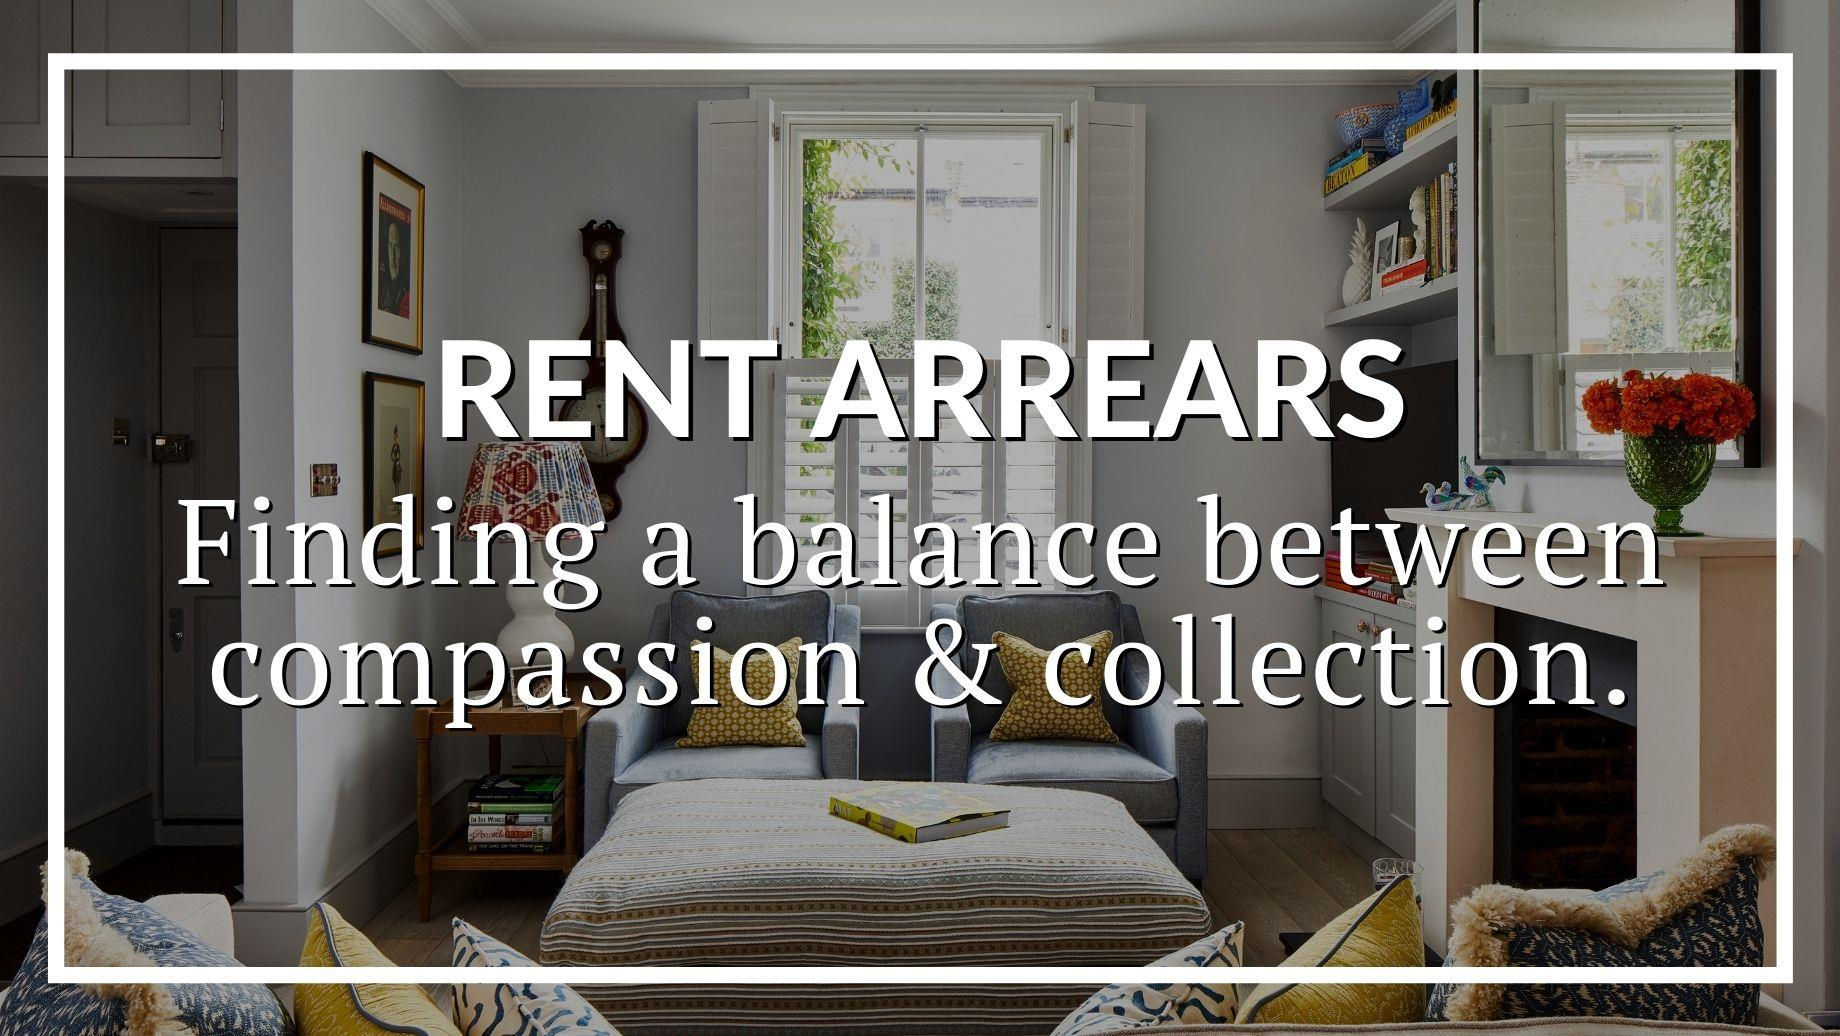 RENT ARREARS: FINDING A BALANCE BETWEEN COMPASSION AND COLLECTION